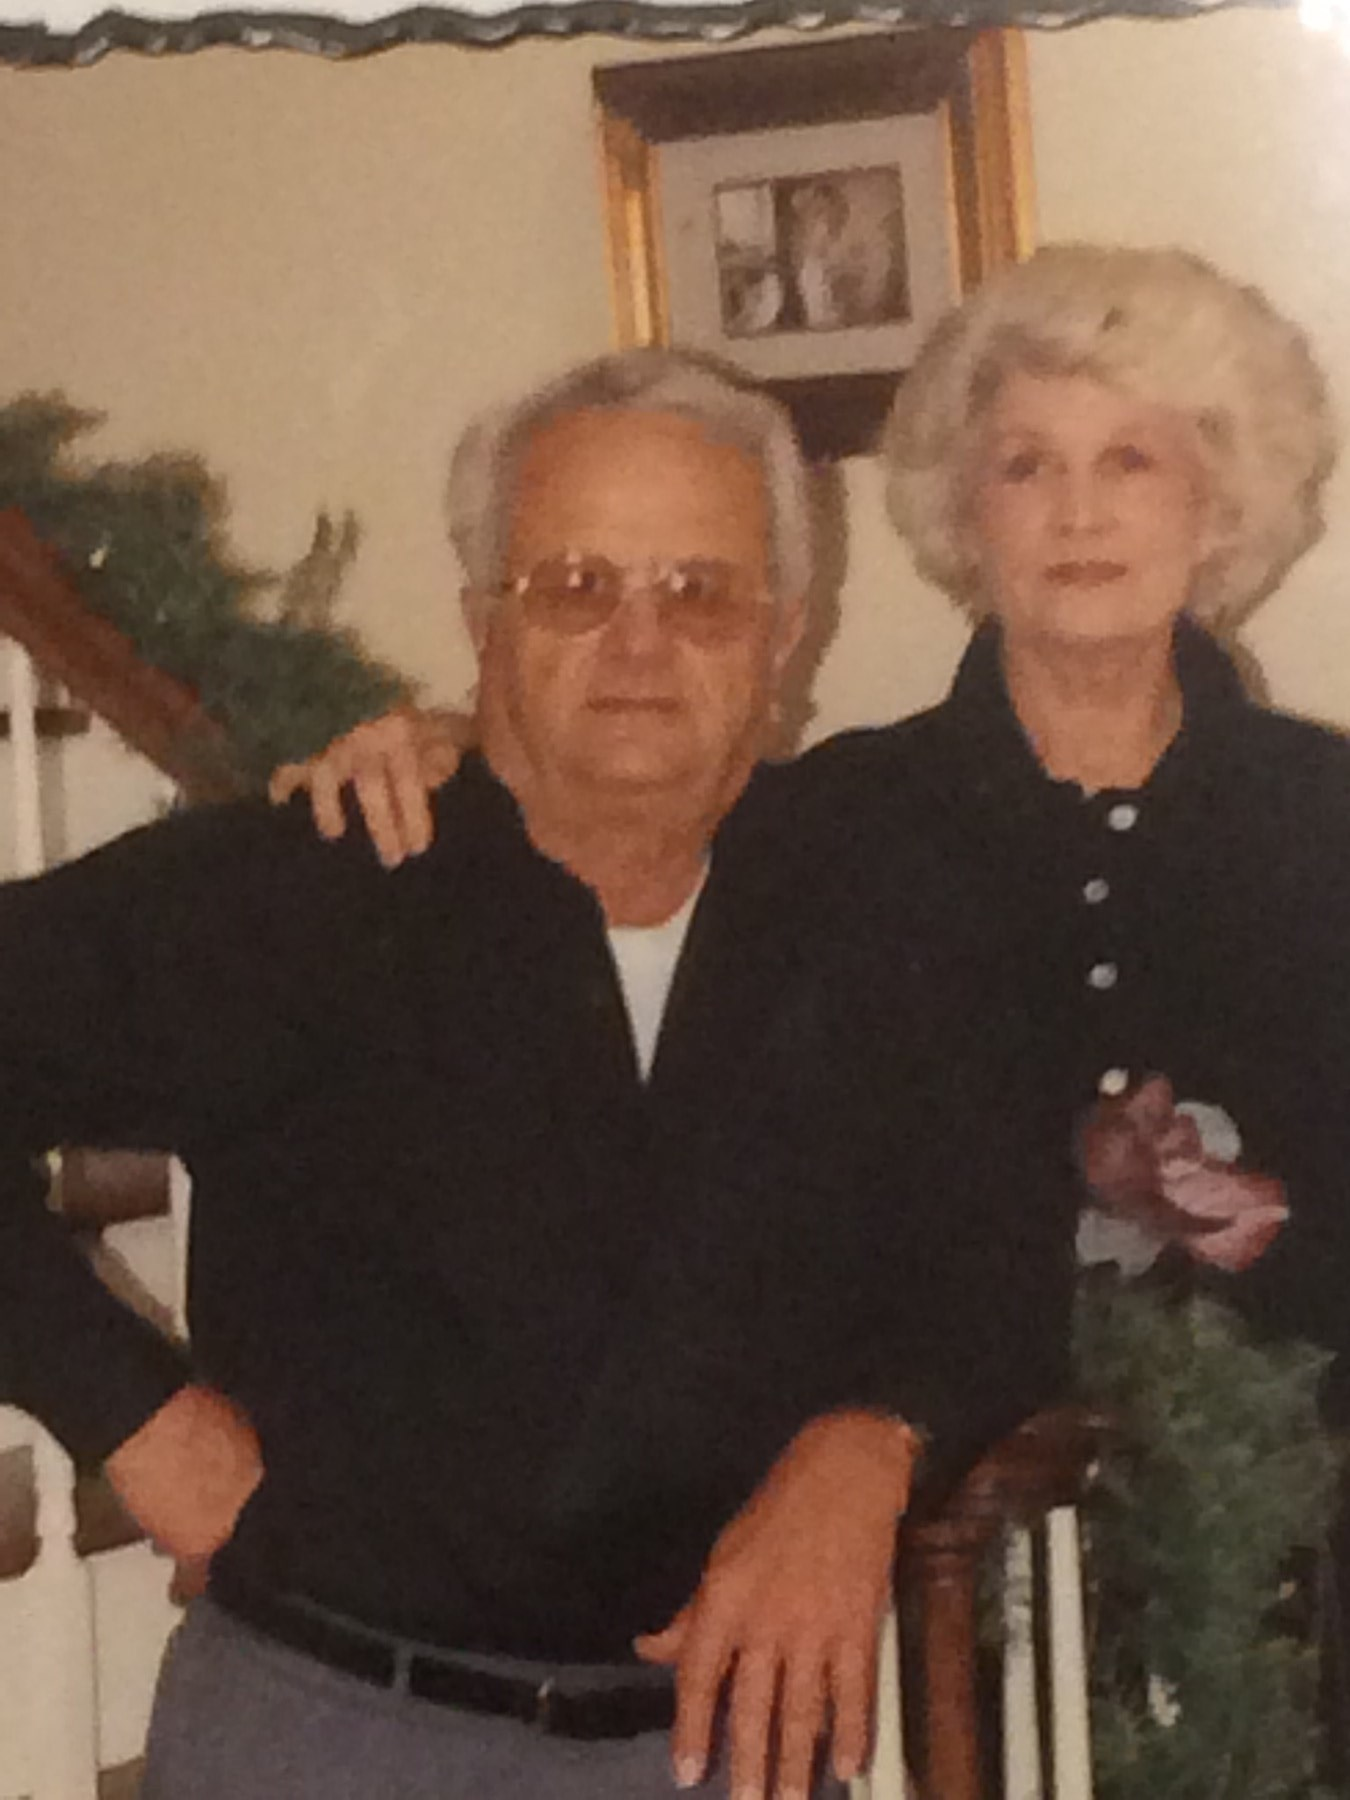 Obituary of Leon W. & Wilma Jean Giese